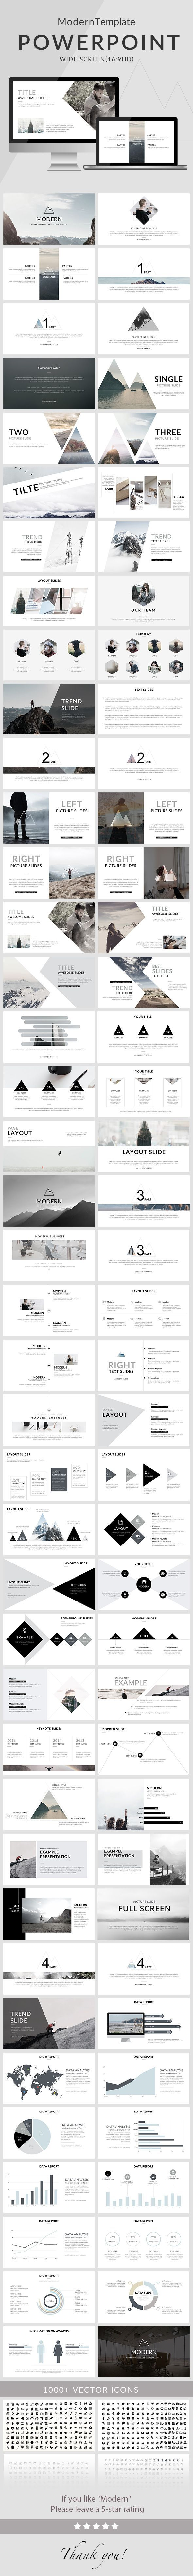 Professional resume template cover letter for ms word modern cv modern powerpoint template creative powerpoint templates toneelgroepblik Image collections